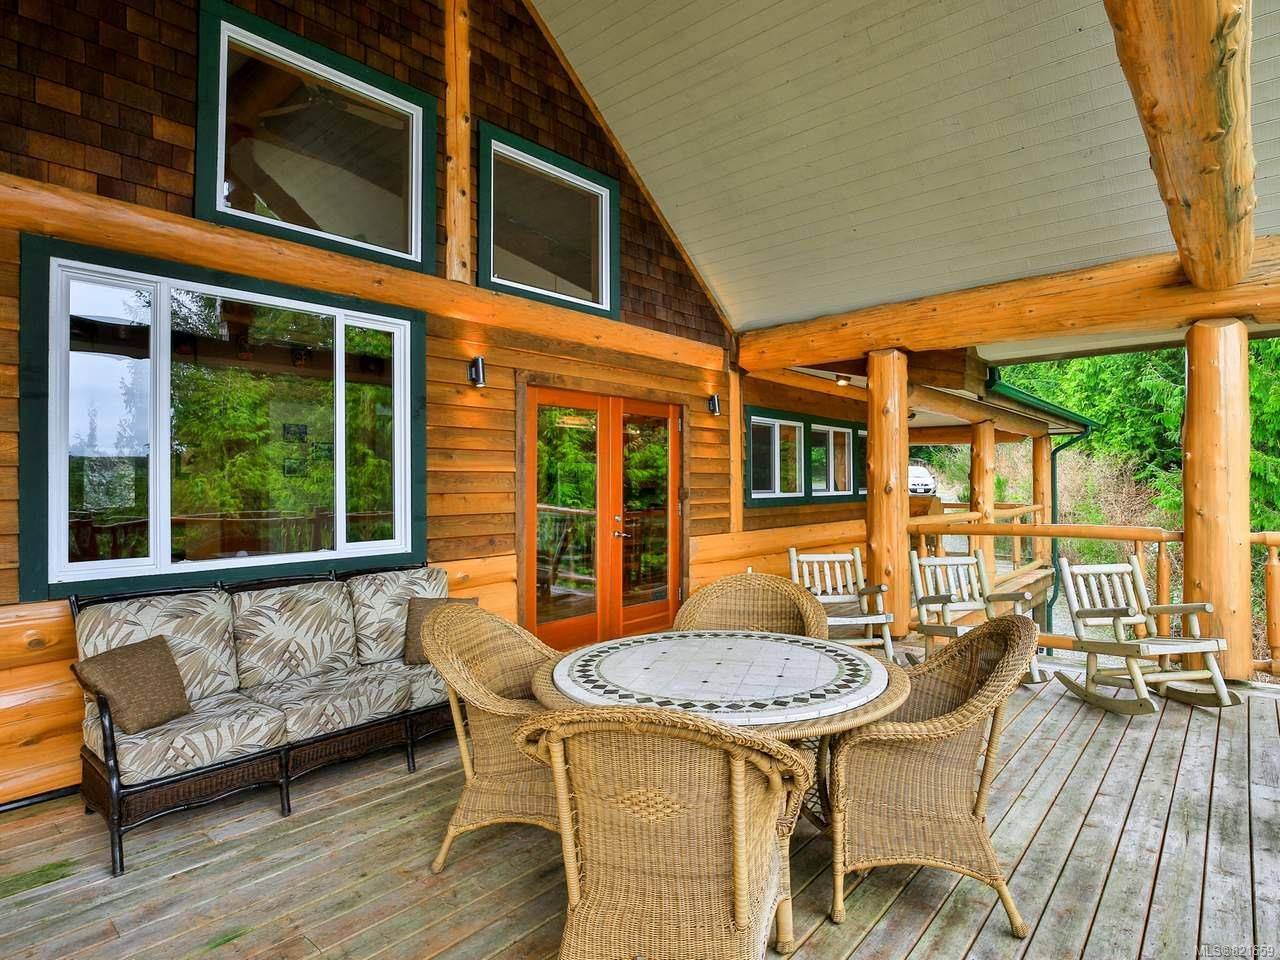 Photo 43: Photos: 1049 Helen Rd in UCLUELET: PA Ucluelet House for sale (Port Alberni)  : MLS®# 821659